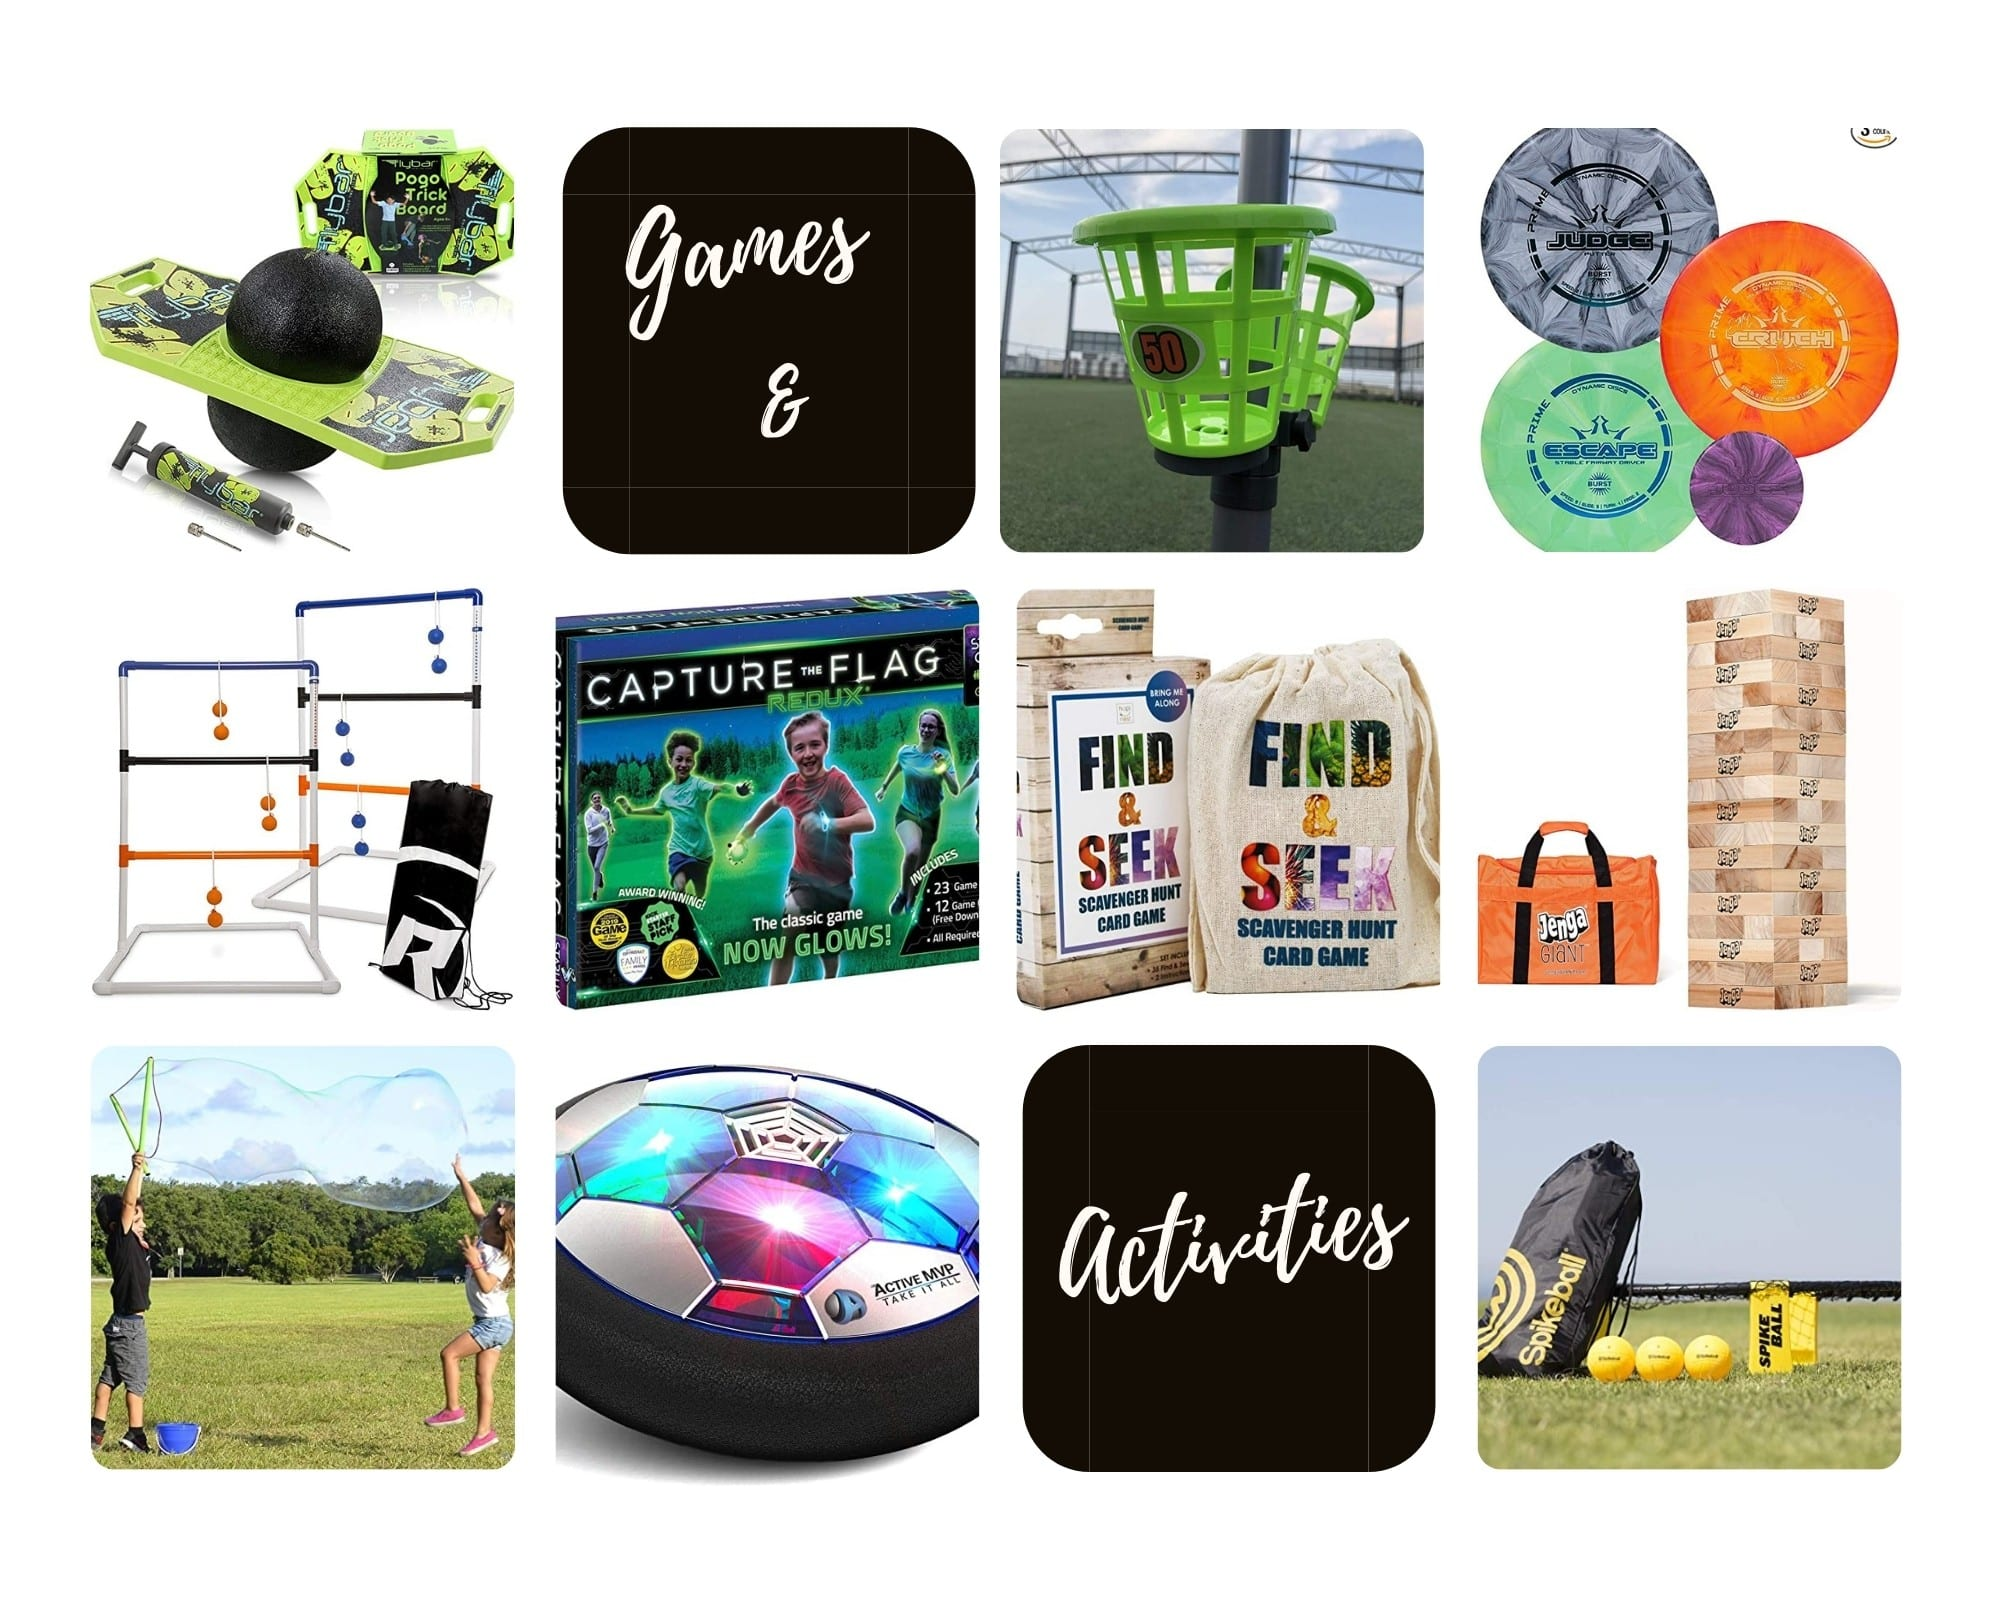 Product Images of all 10 Games and Activities Gift Ideas